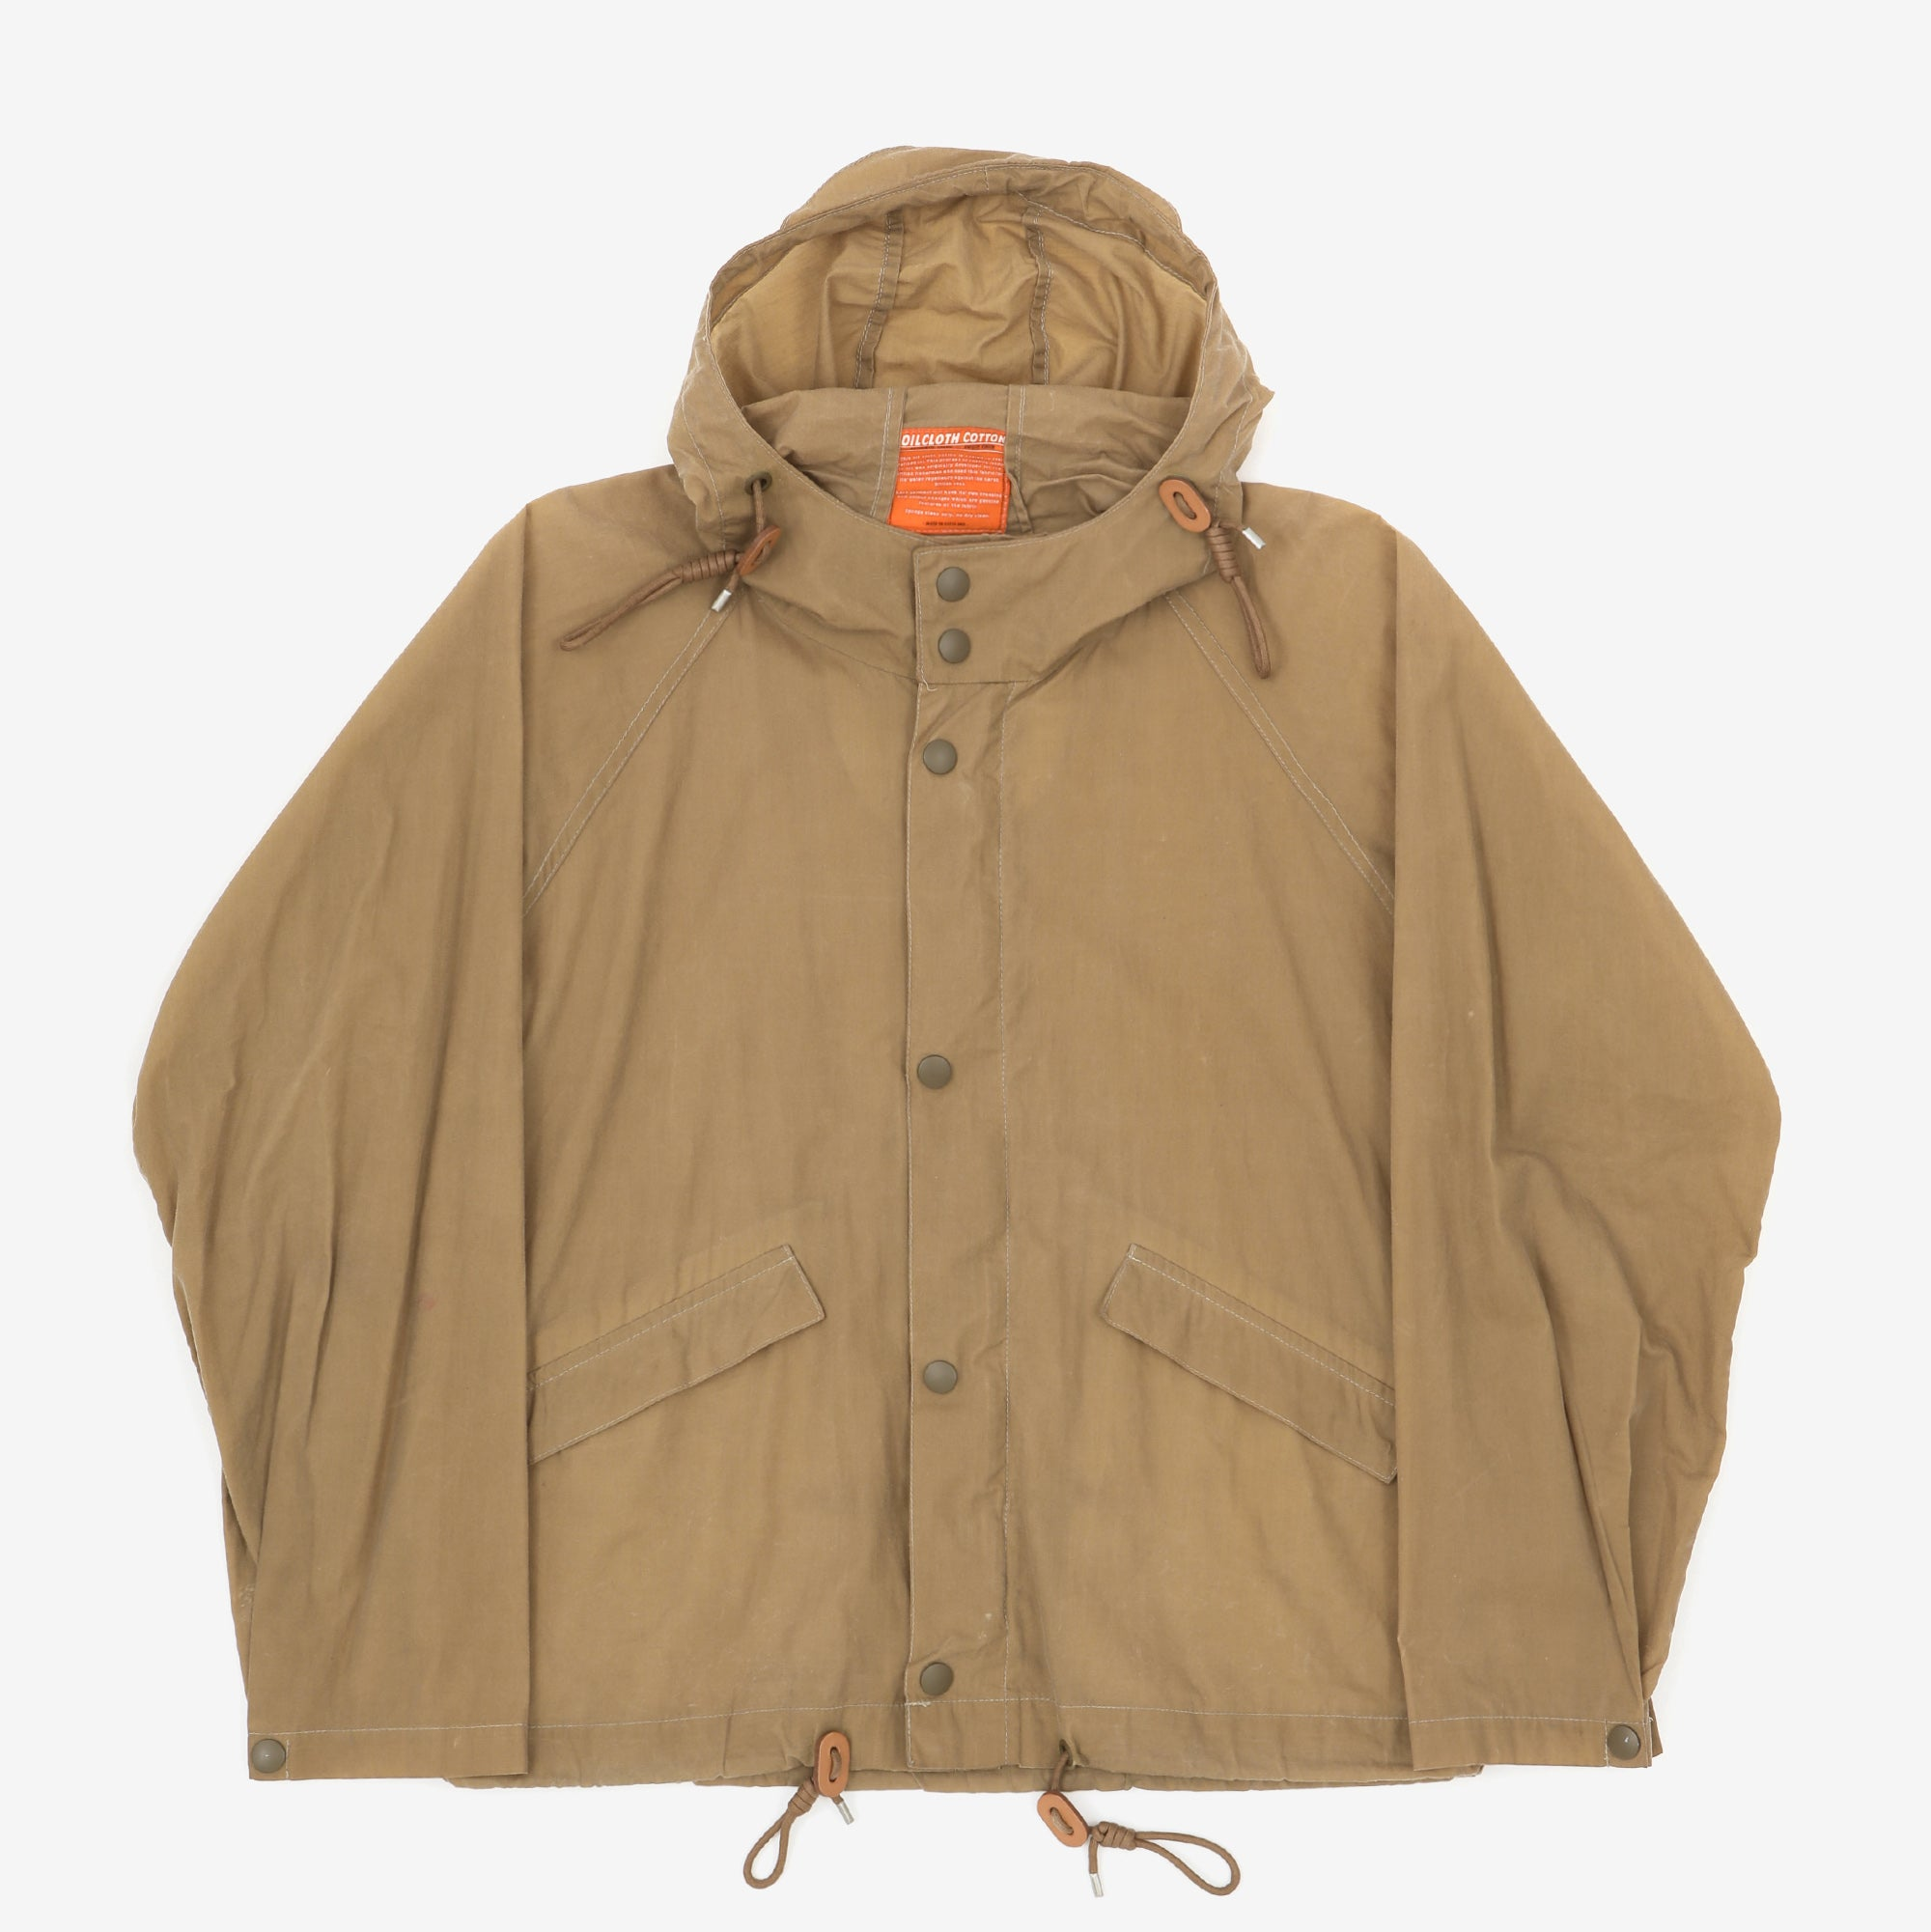 Oil Cloth Cotton Jacket